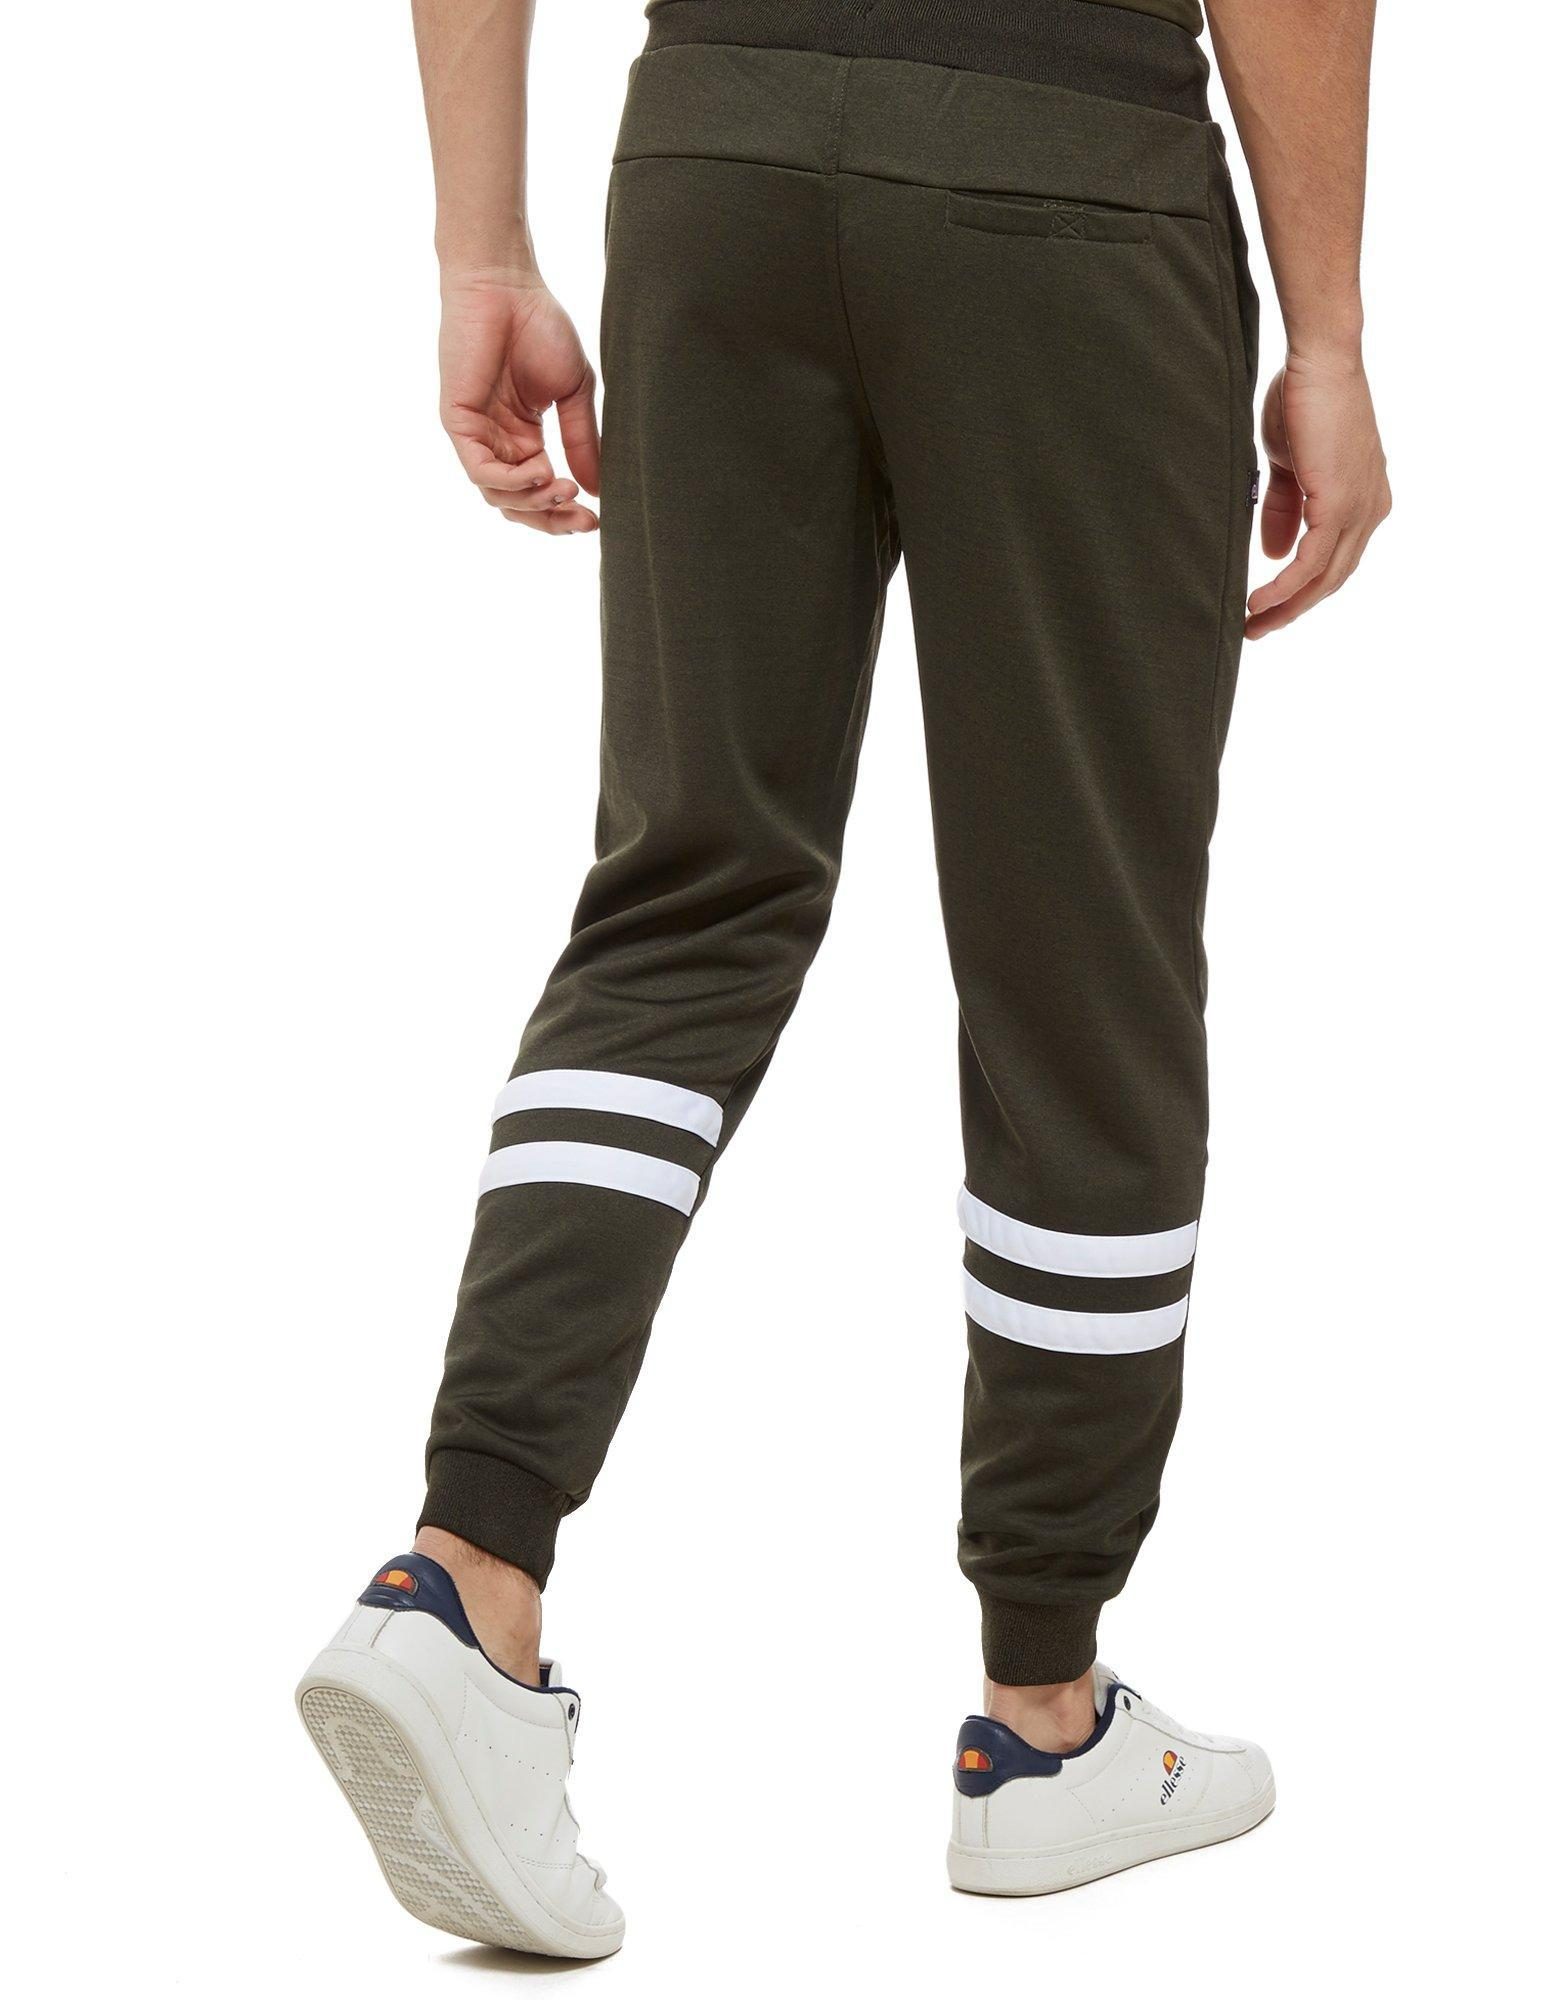 Ellesse Synthetic Fazarono Poly Pants in Green/White (Green) for Men